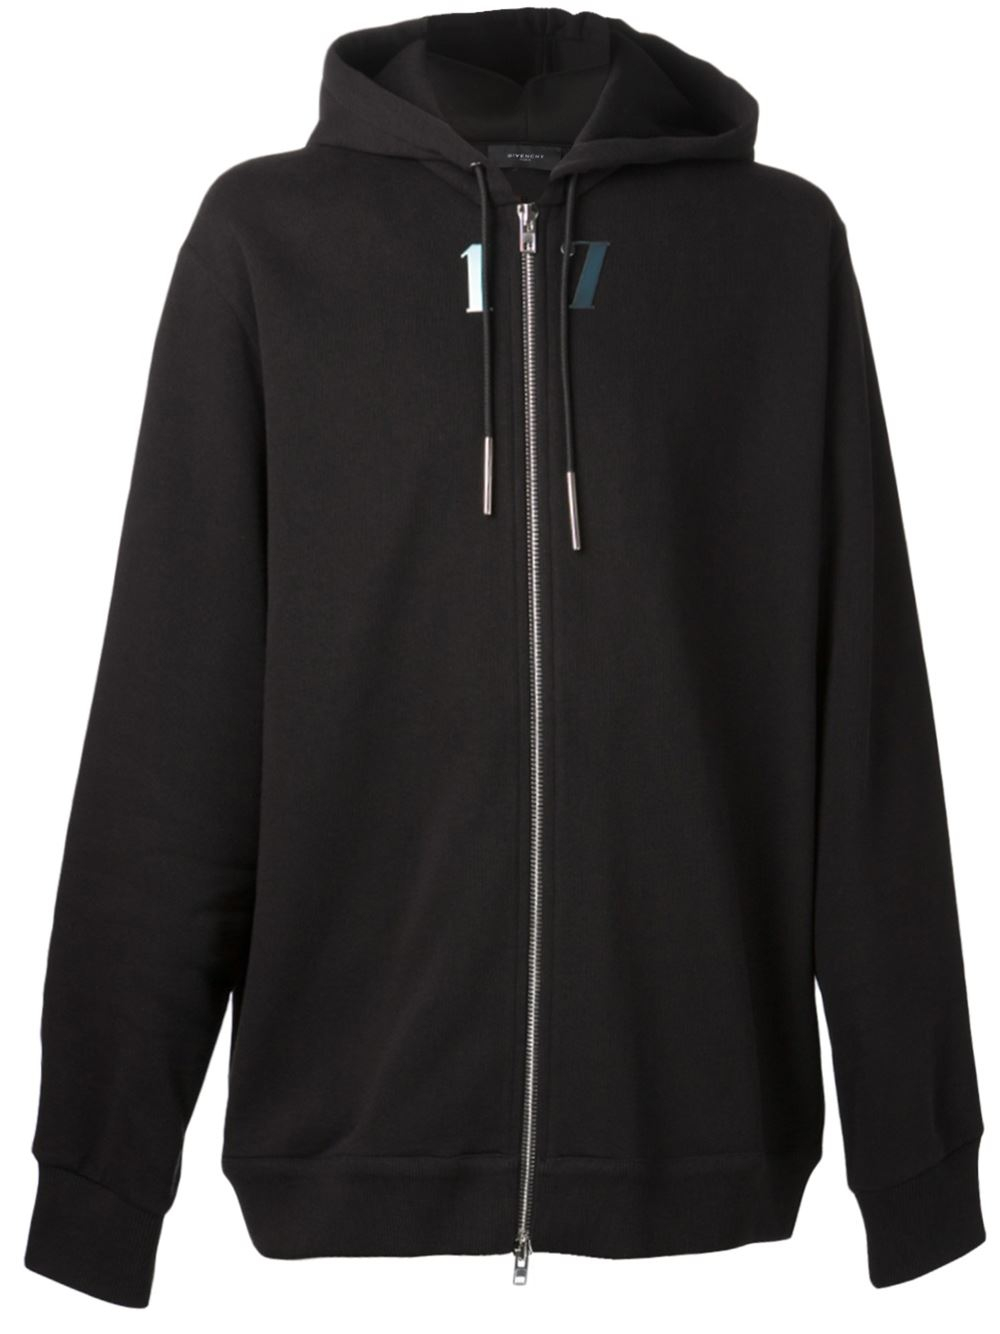 Shop our selection of authentic hoodies for men at The North Face. We have a variety of styles from zip up to pullover. The North Face men's hoodies are perfect for any occasion.